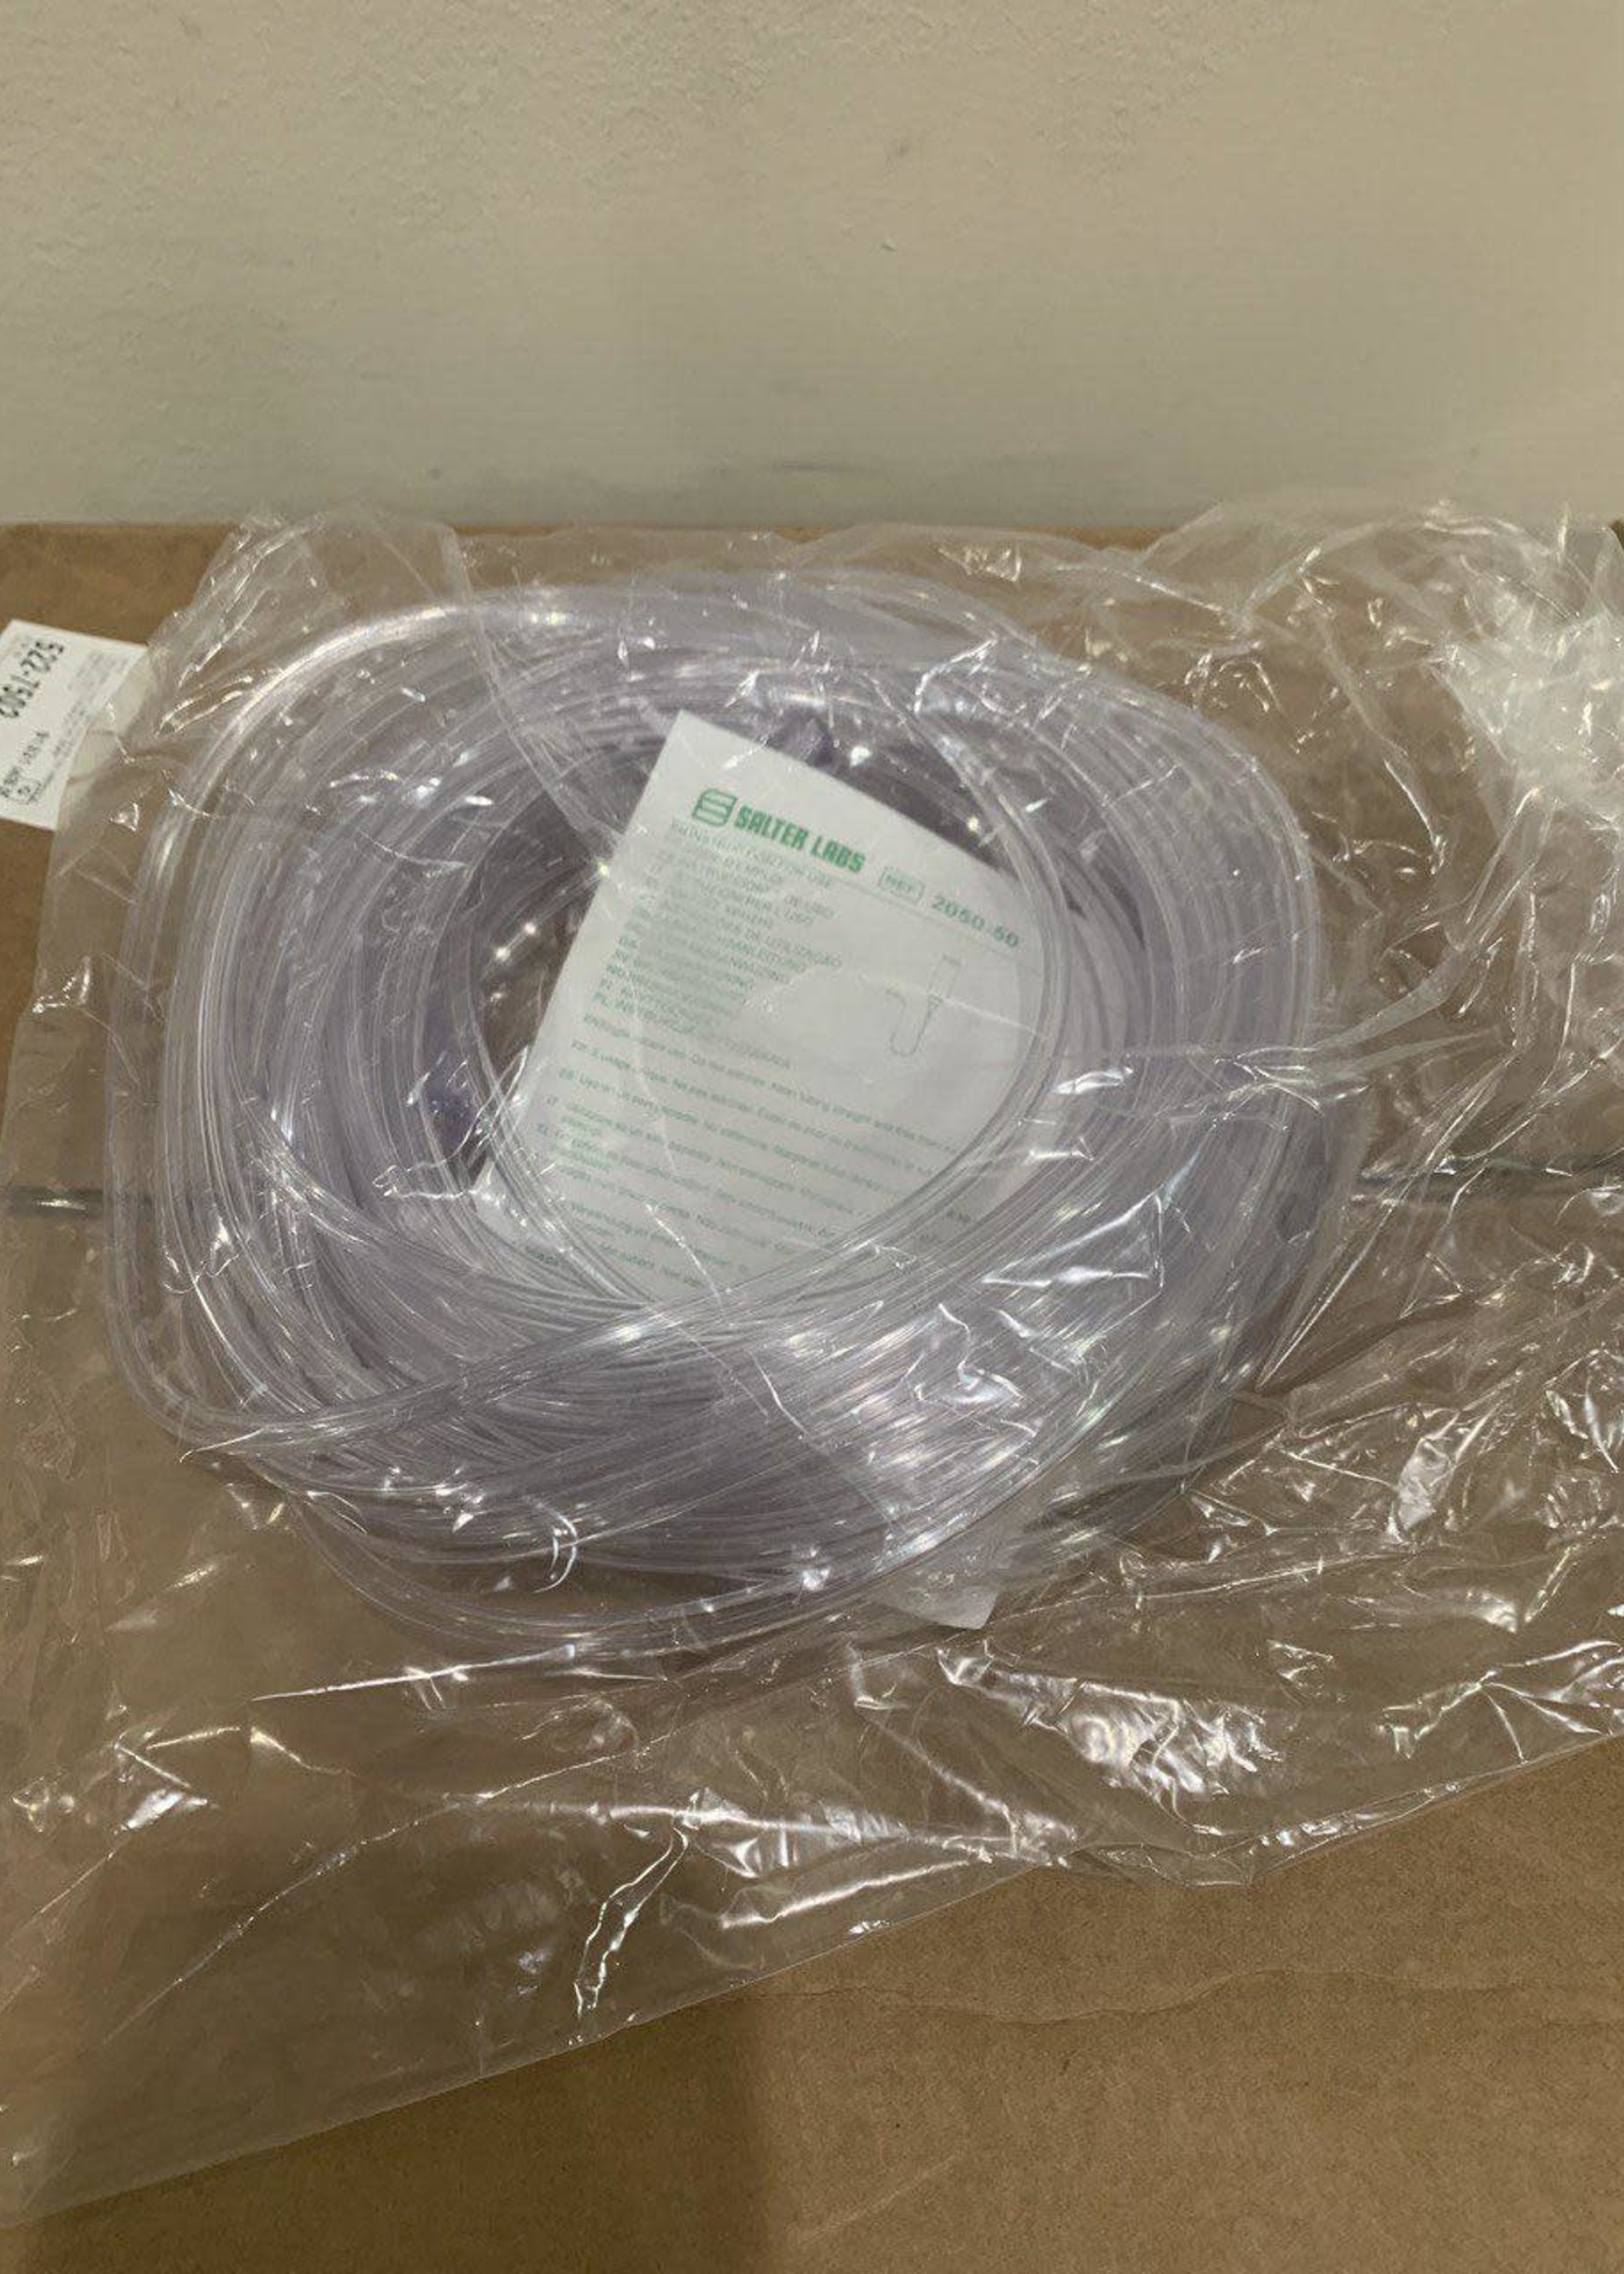 Box of Oxygen Tubing With 2 Connectors